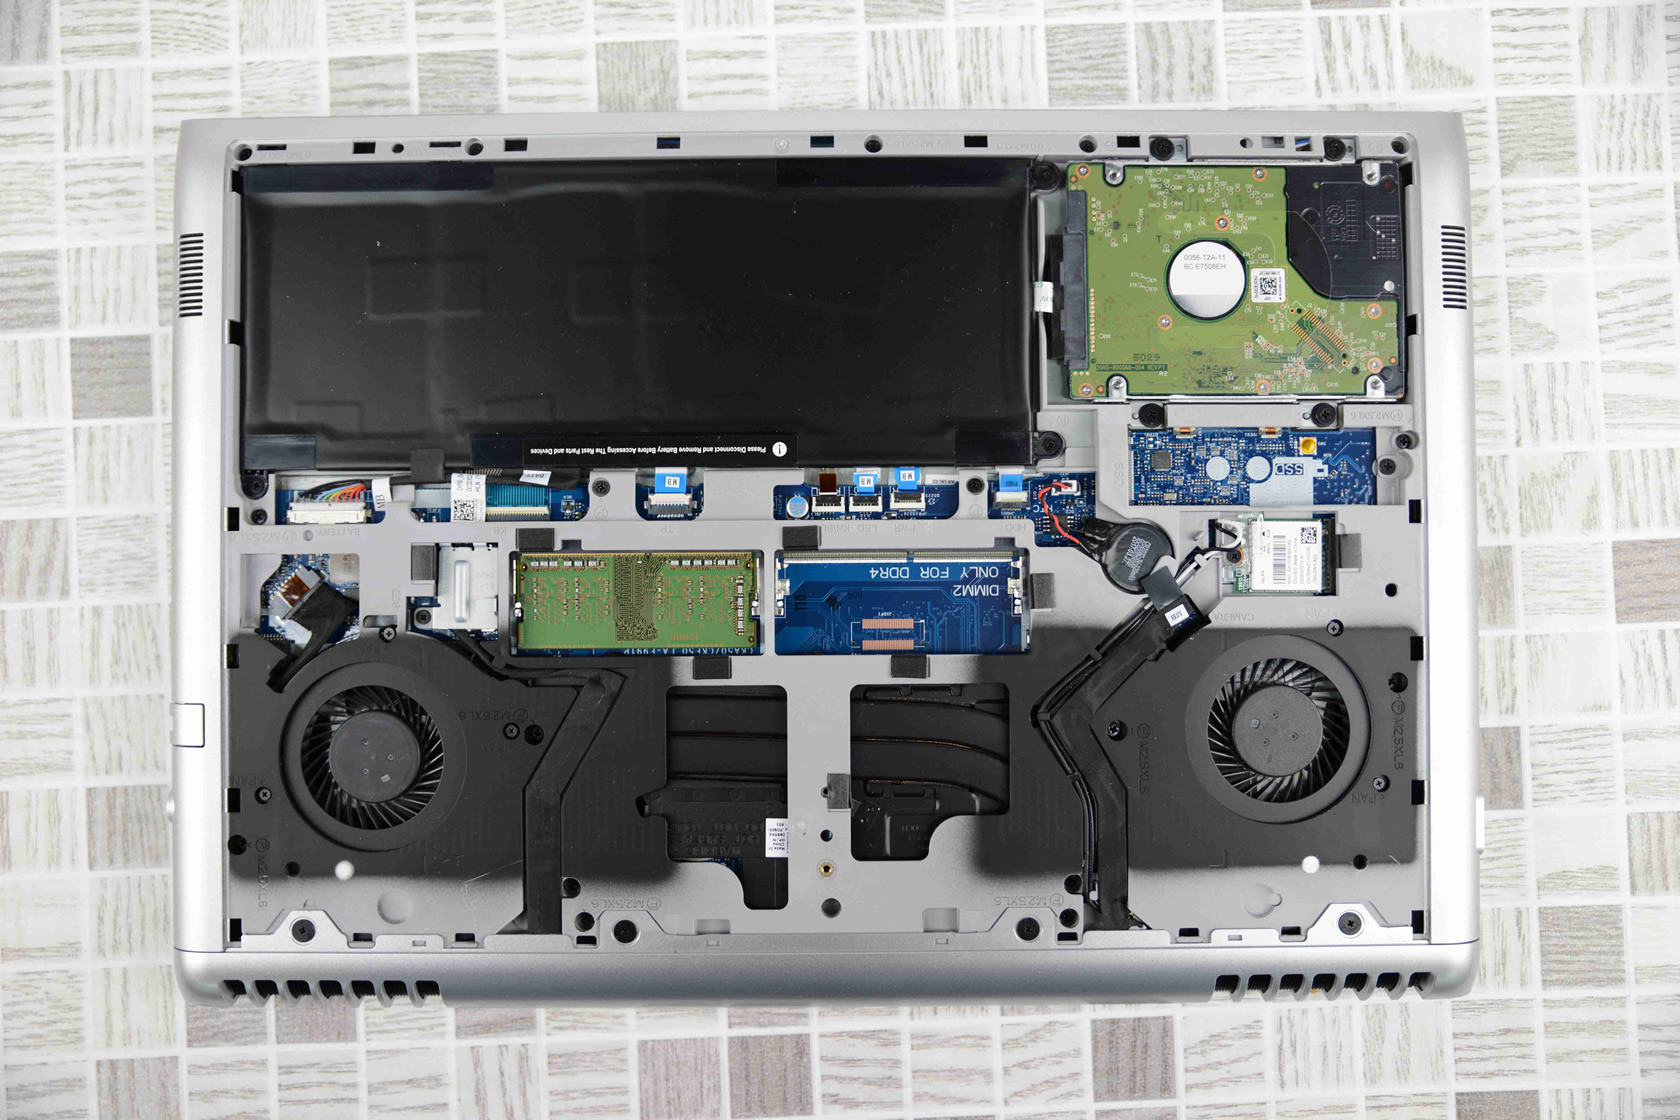 Dell Vostro 15 7570 internal picture